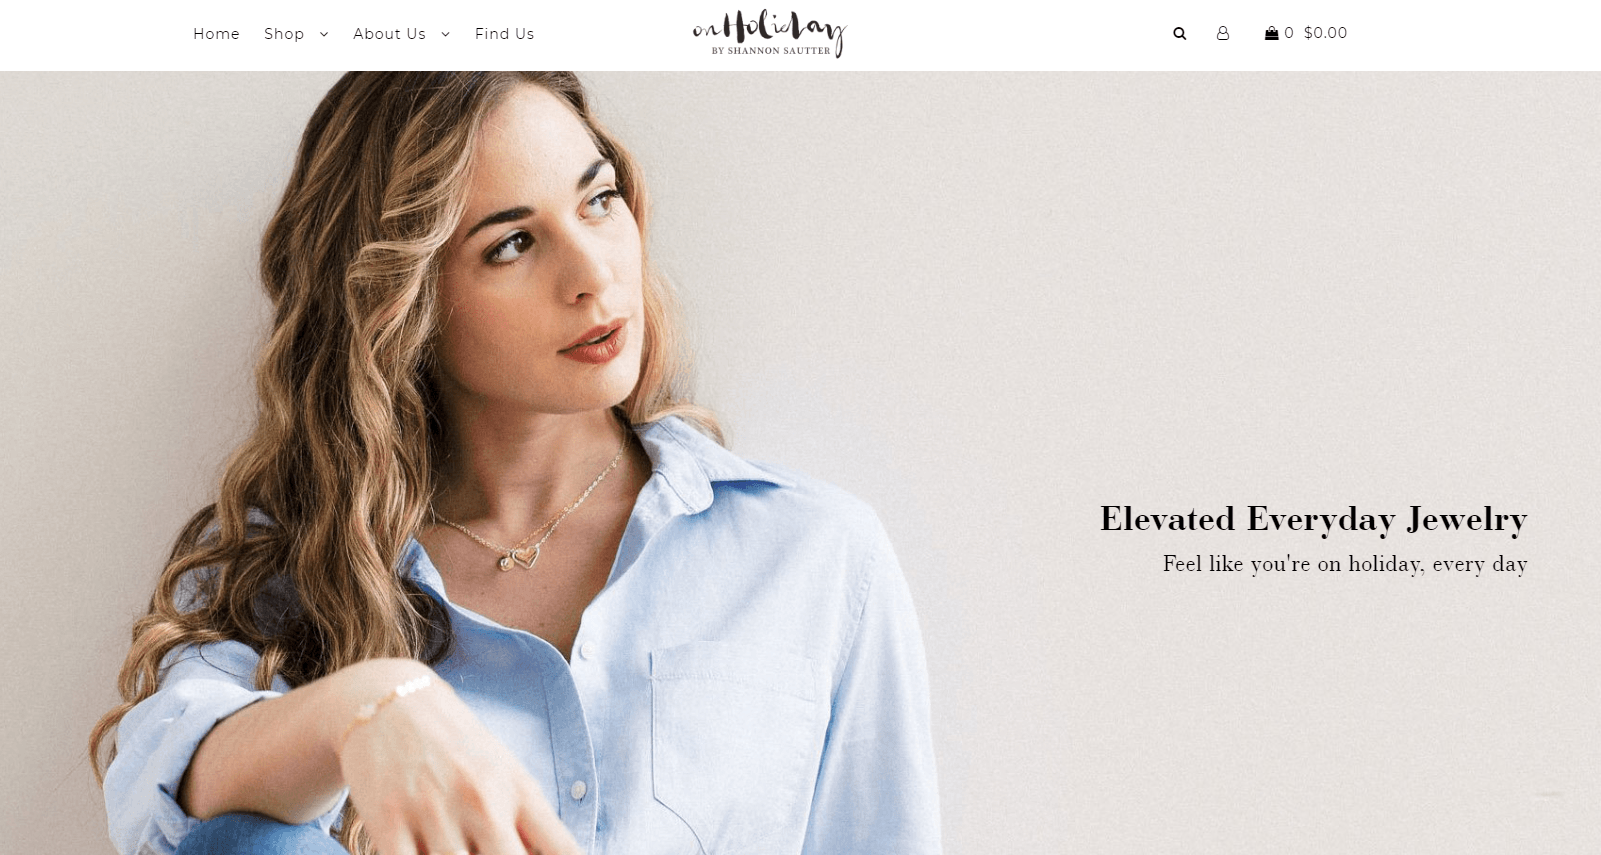 Jewelry online store, Web site #3